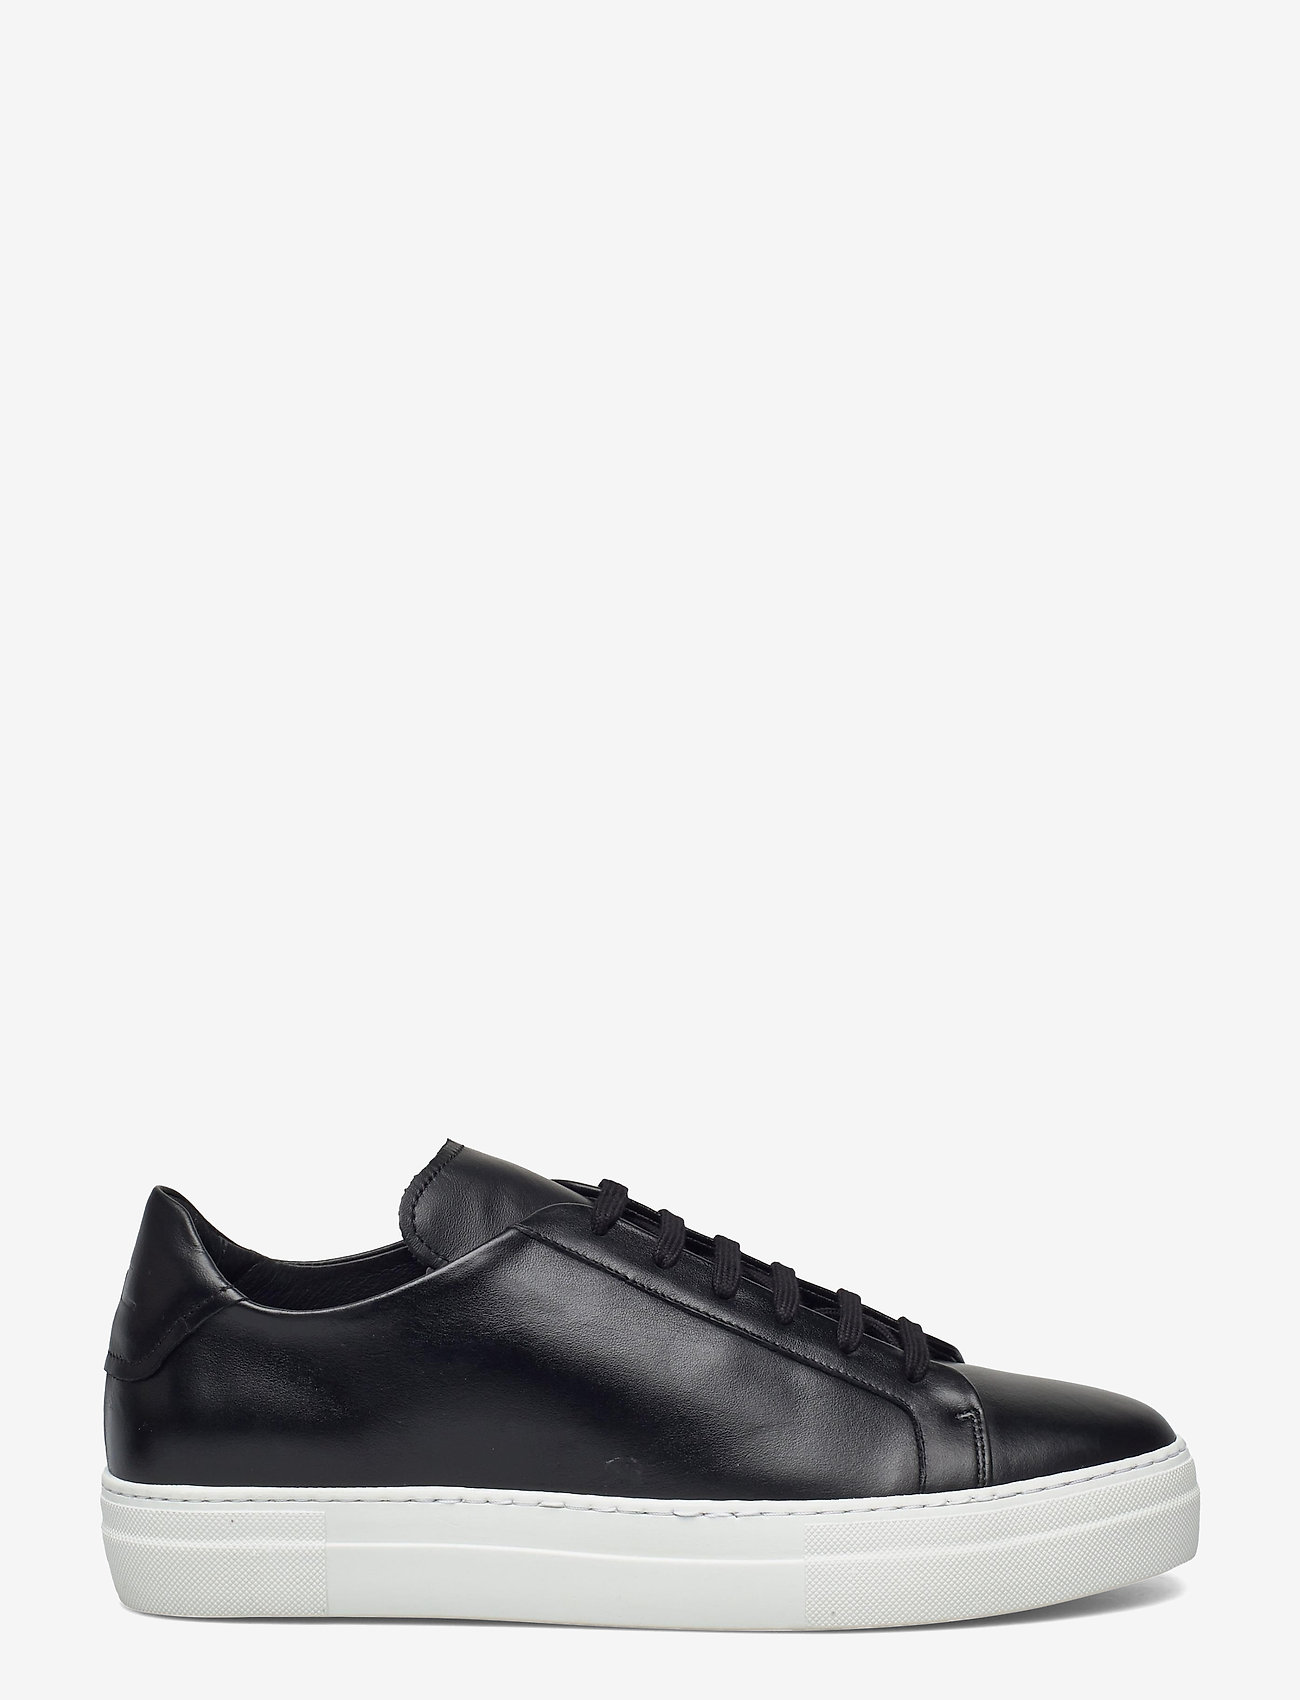 J. Lindeberg - Signature Leather Sneaker - niedriger schnitt - black - 1